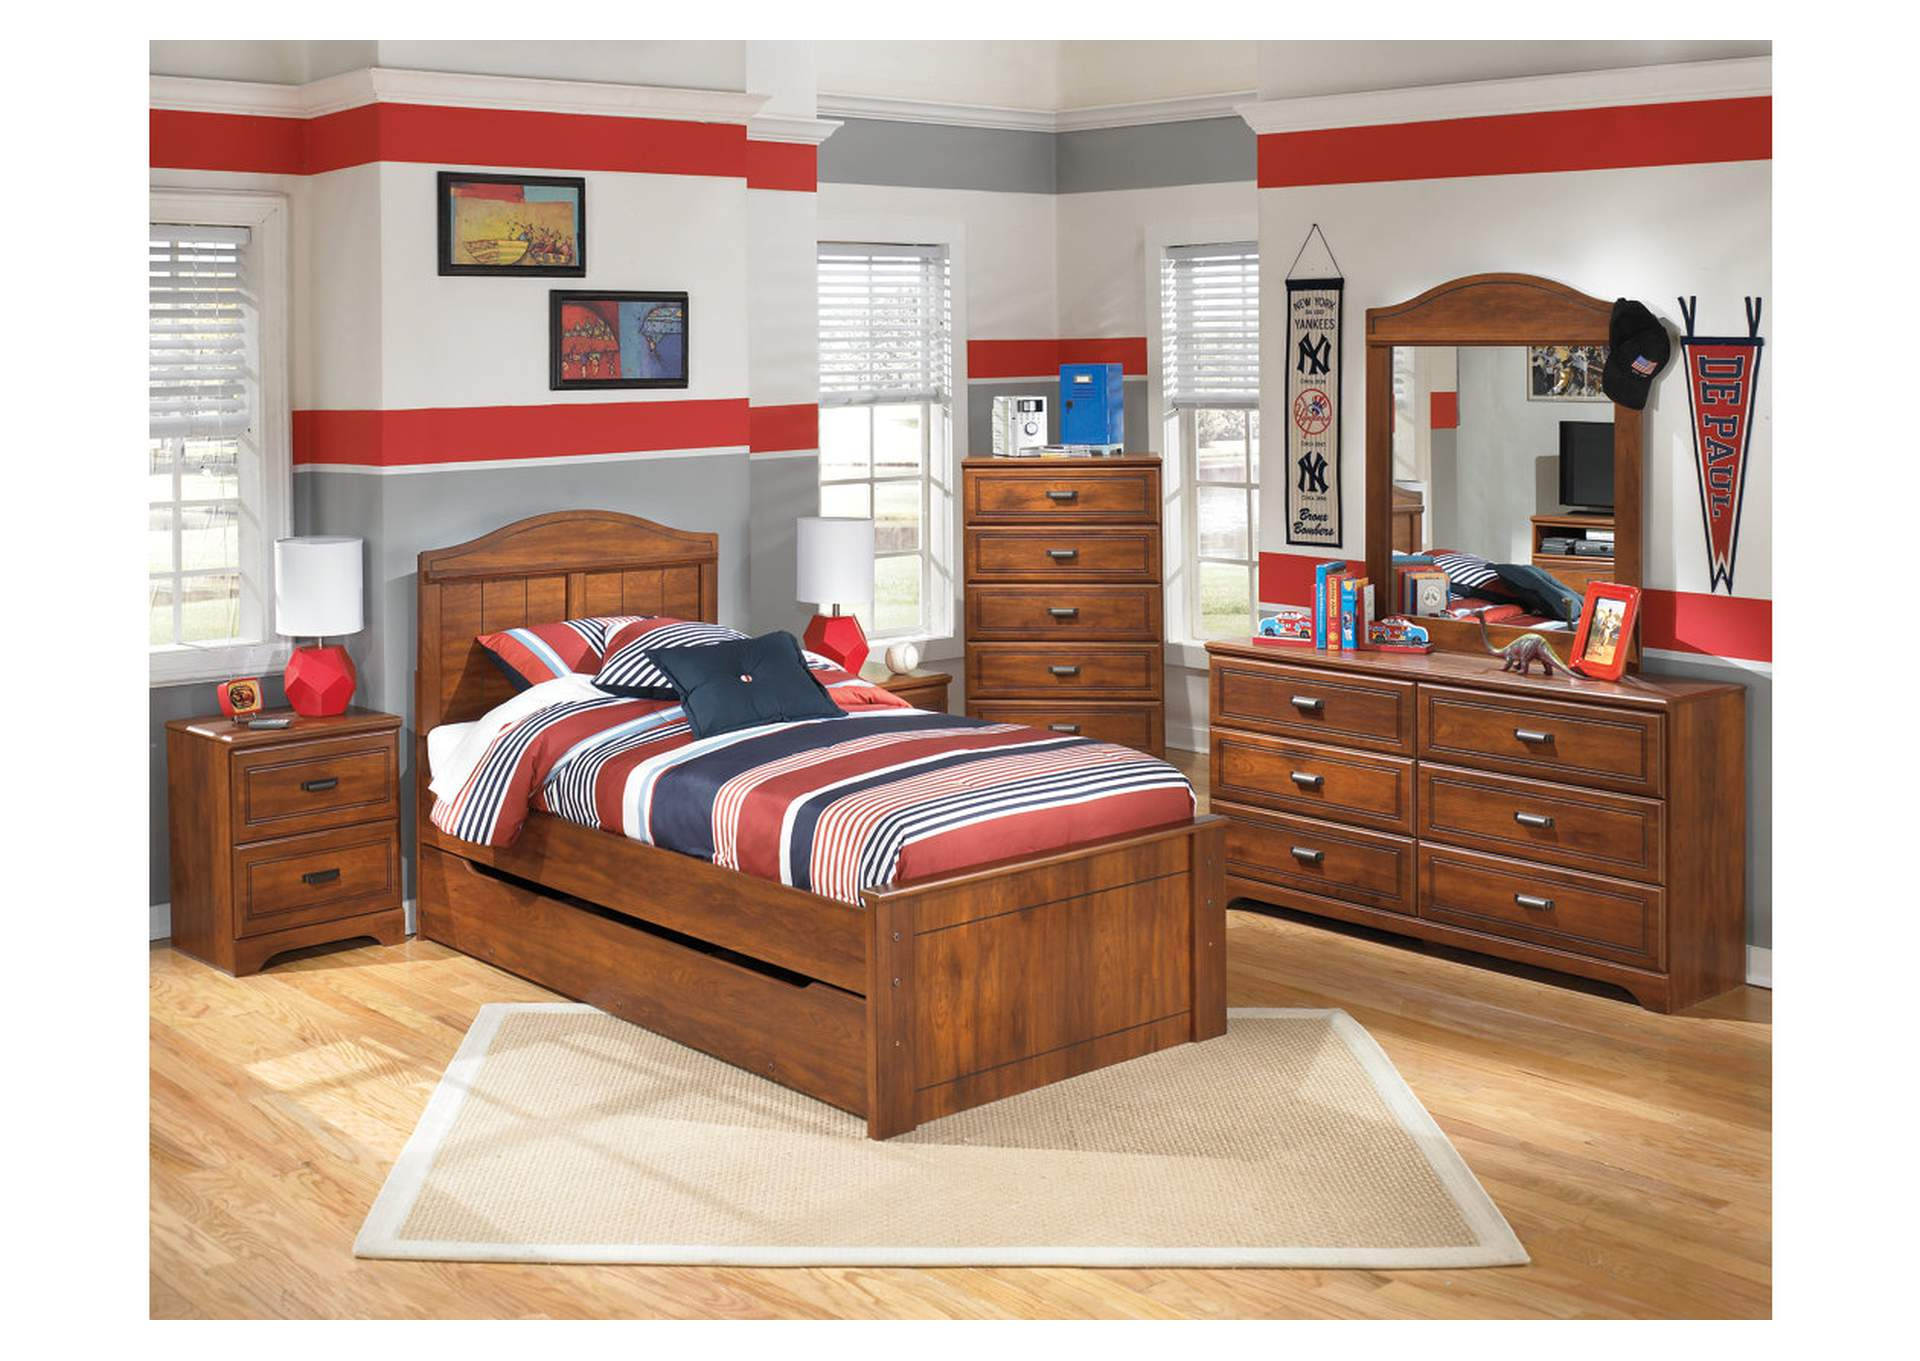 Barchan Twin Panel Bed w/Trundle, Dresser, Mirror & Drawer Chest,Signature Design By Ashley